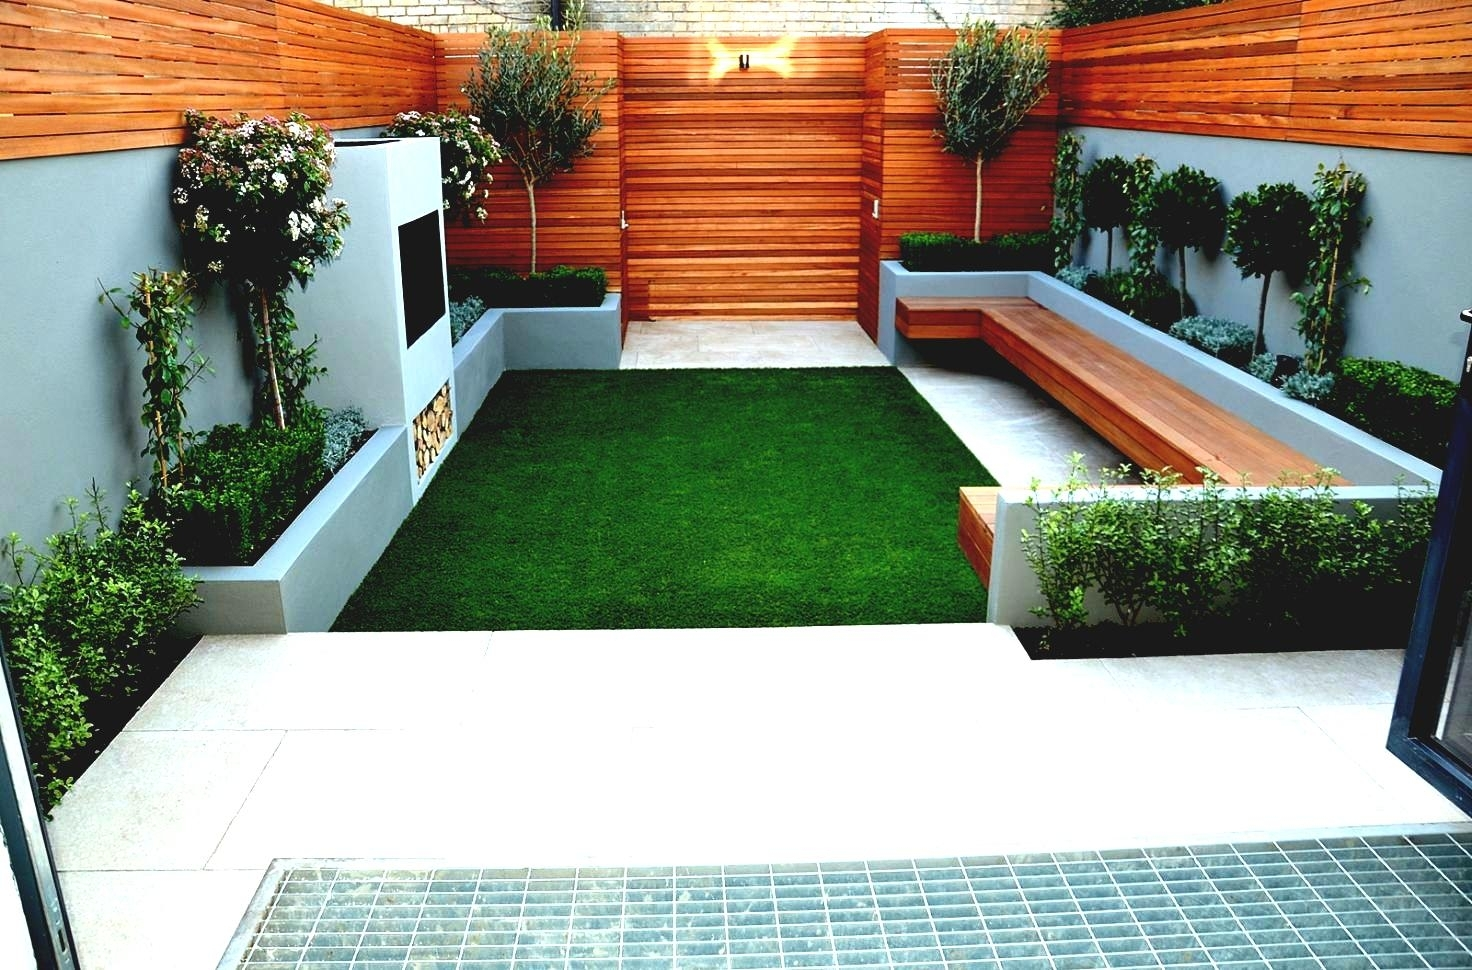 Paving ideas for small back gardens garden design for Back garden landscaping ideas